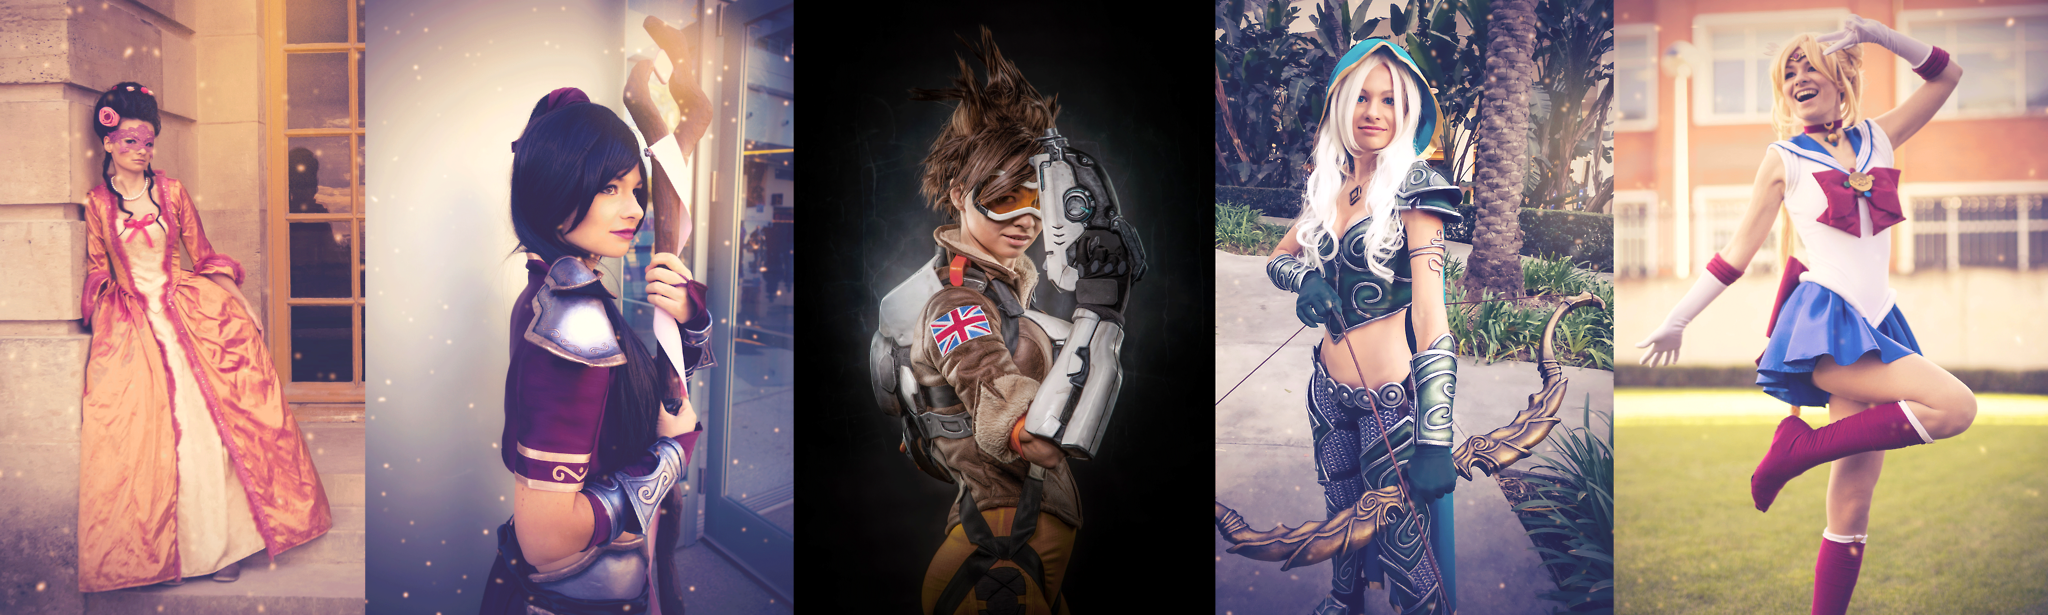 ardsami cosplay u2014 hi i hope this can help you make your own tracer